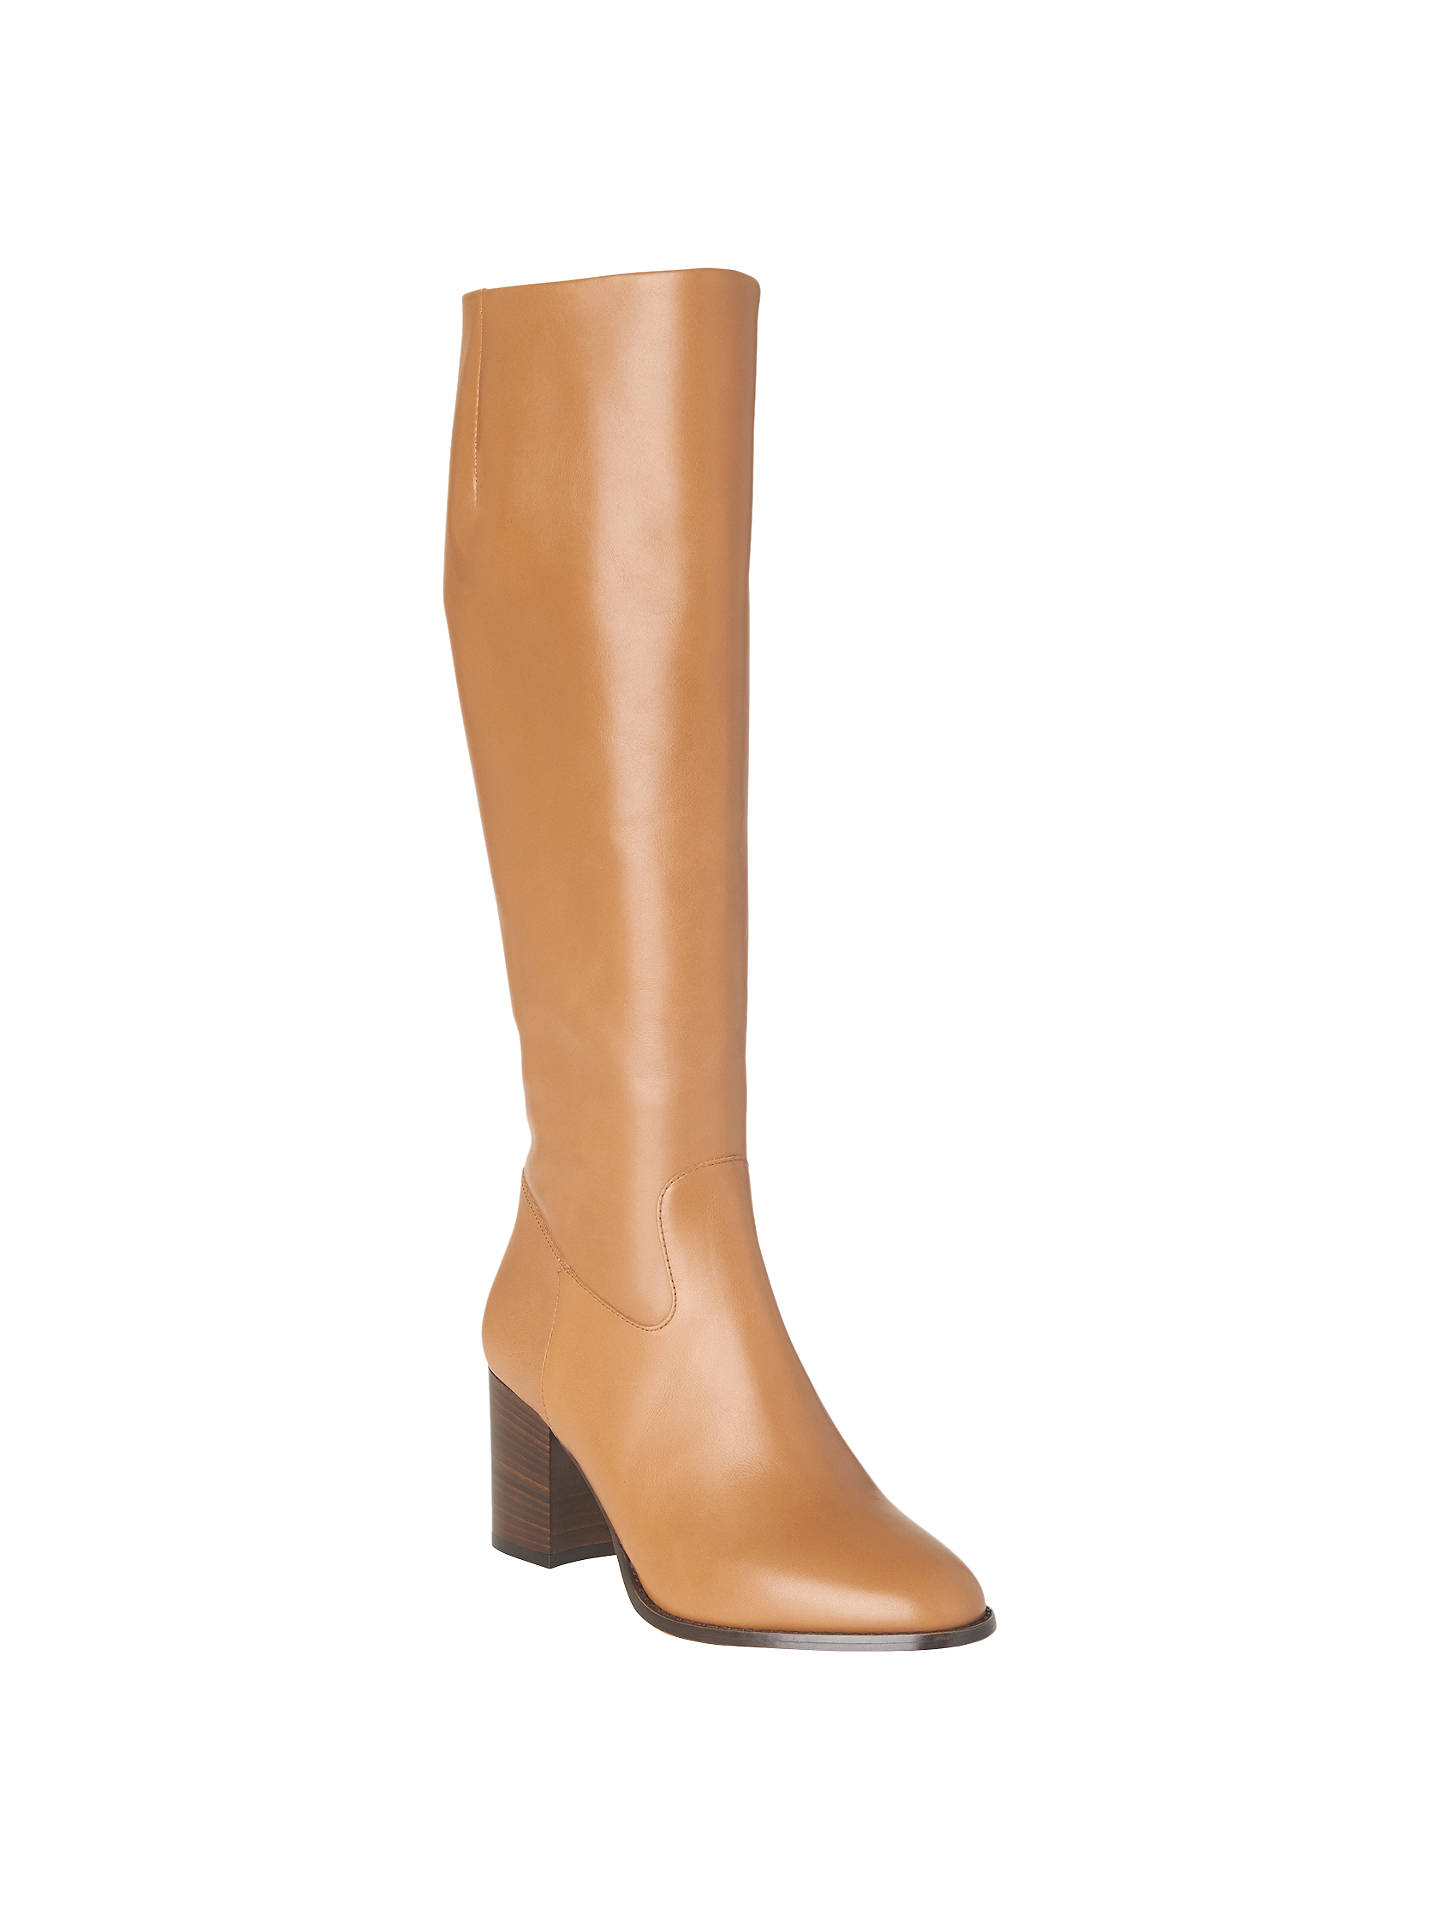 48e490ed7f4 Buy L.K.Bennett Phoenix Knee High Boots, Cognac Leather, 5 Online at  johnlewis.